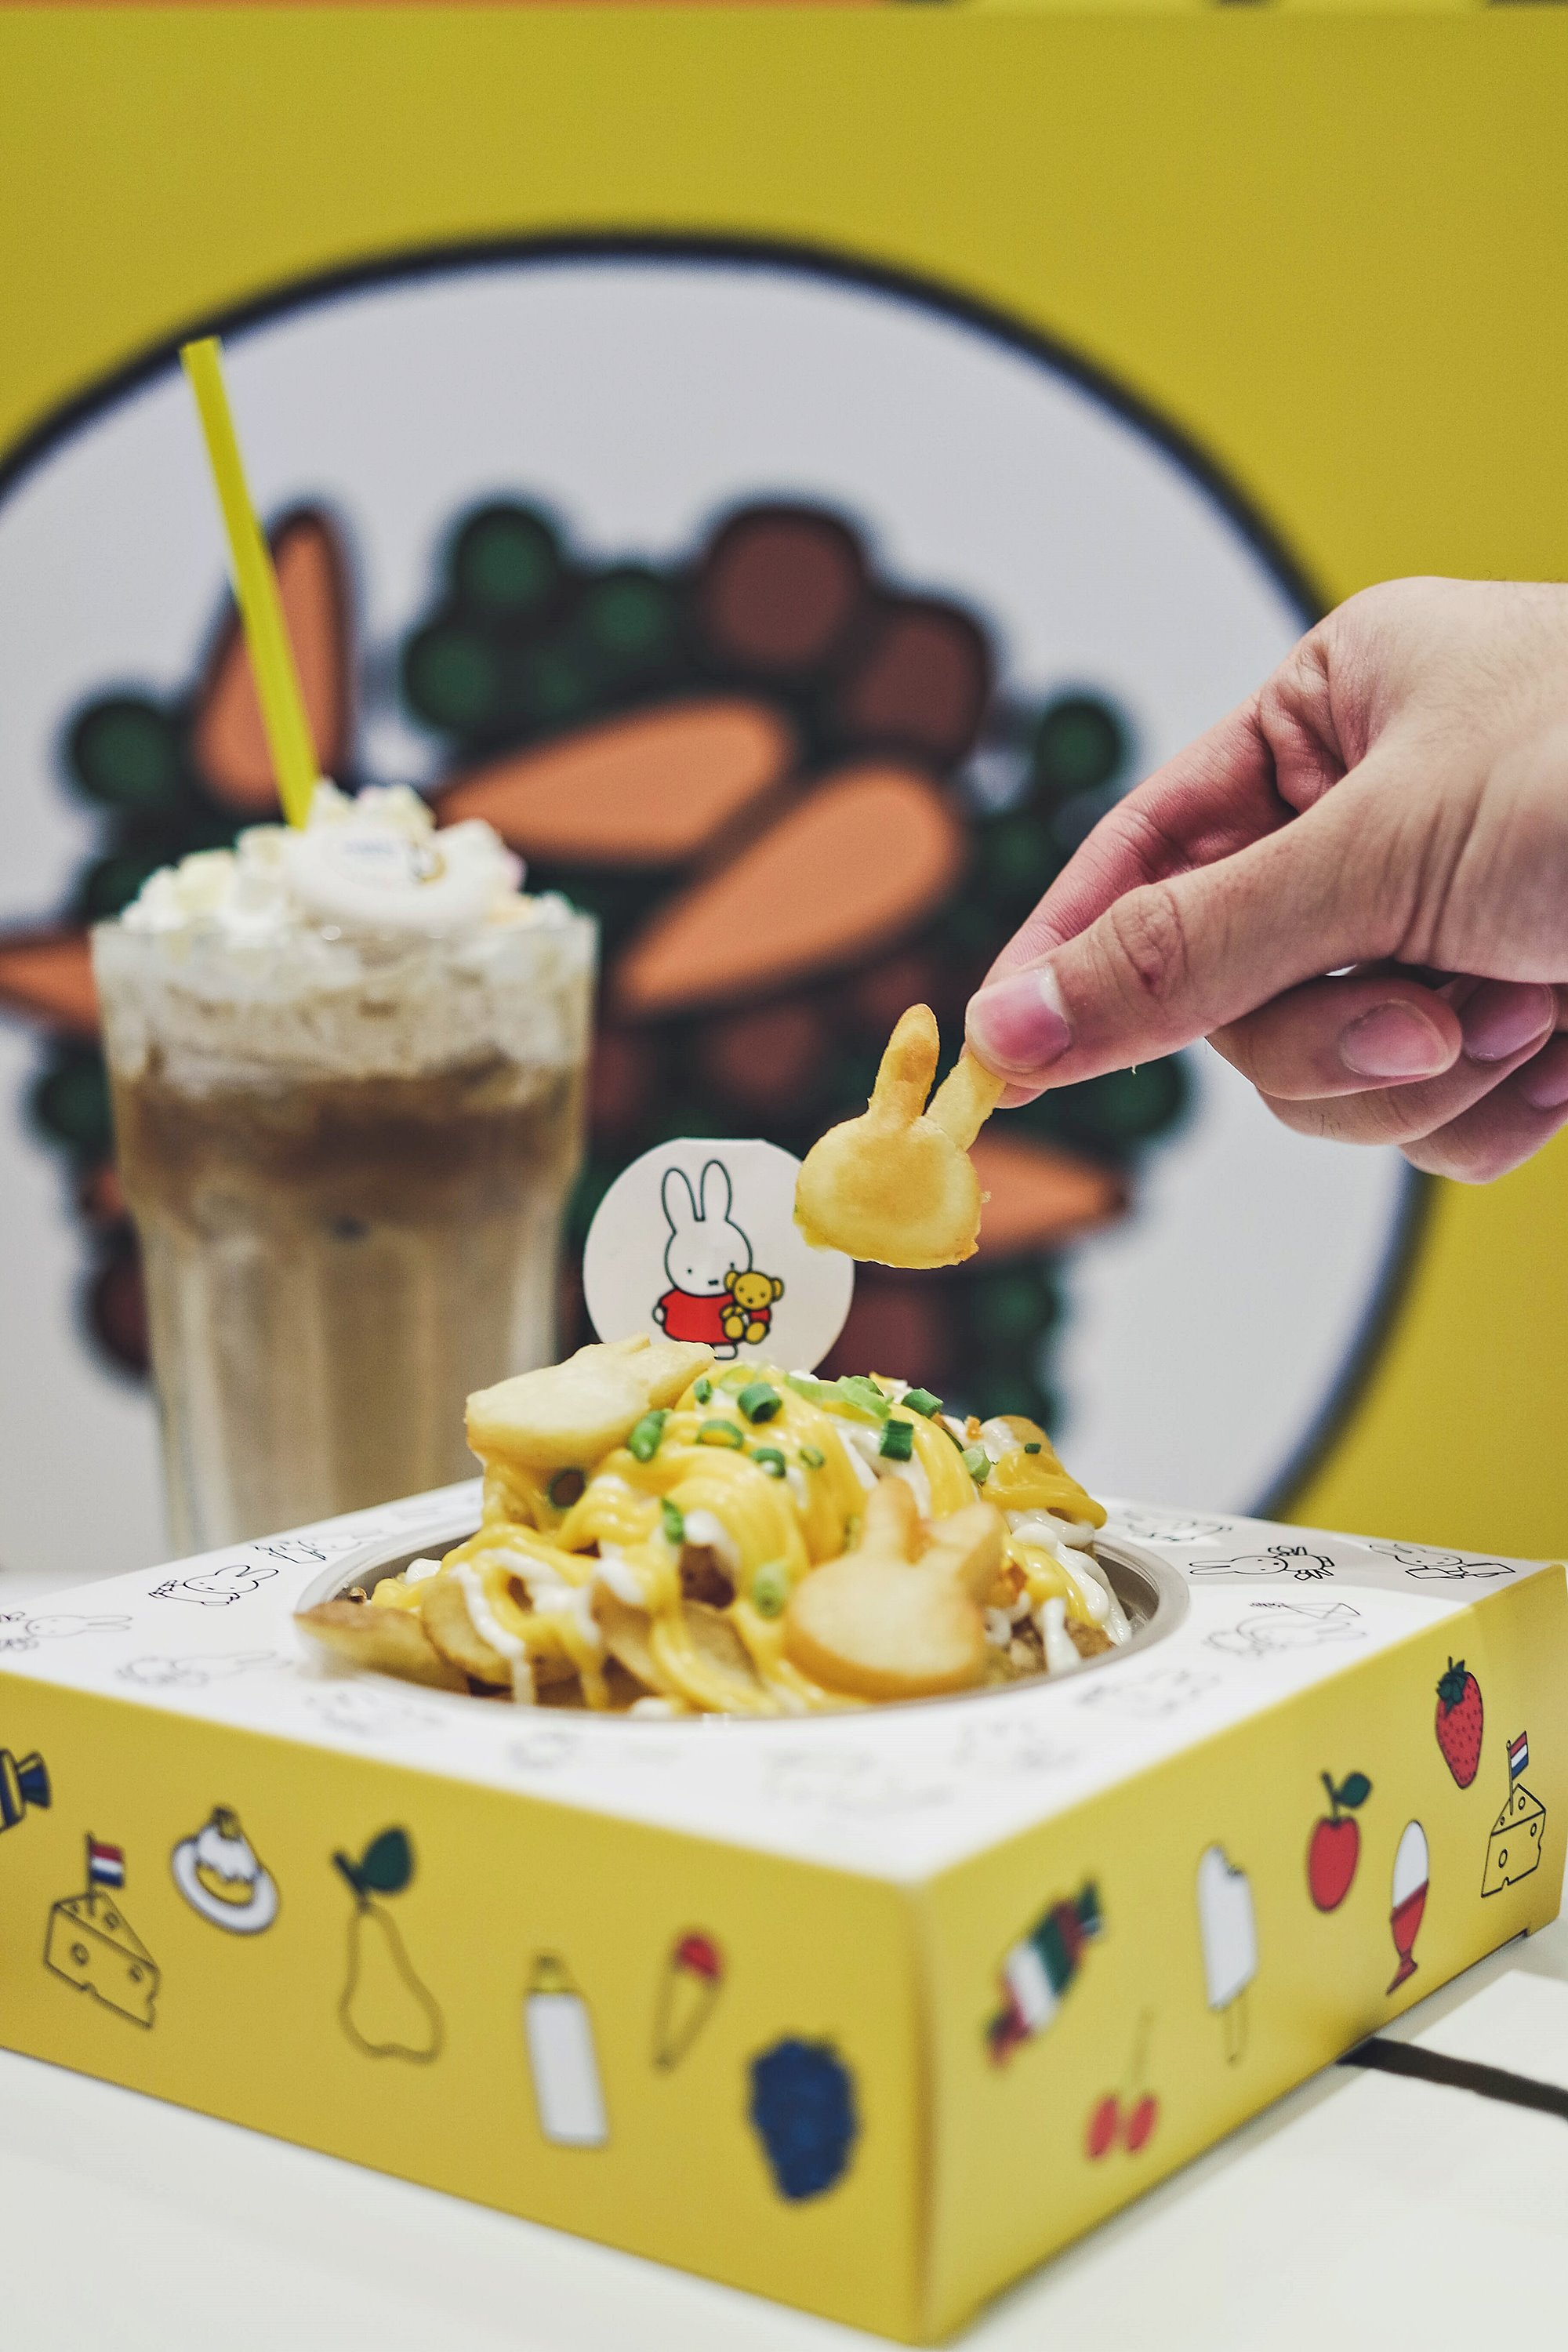 Miffy's Nice Nacho Cheese Fries and Iced Latte Delight - Miffy Character Themed Cafe - Kumoya